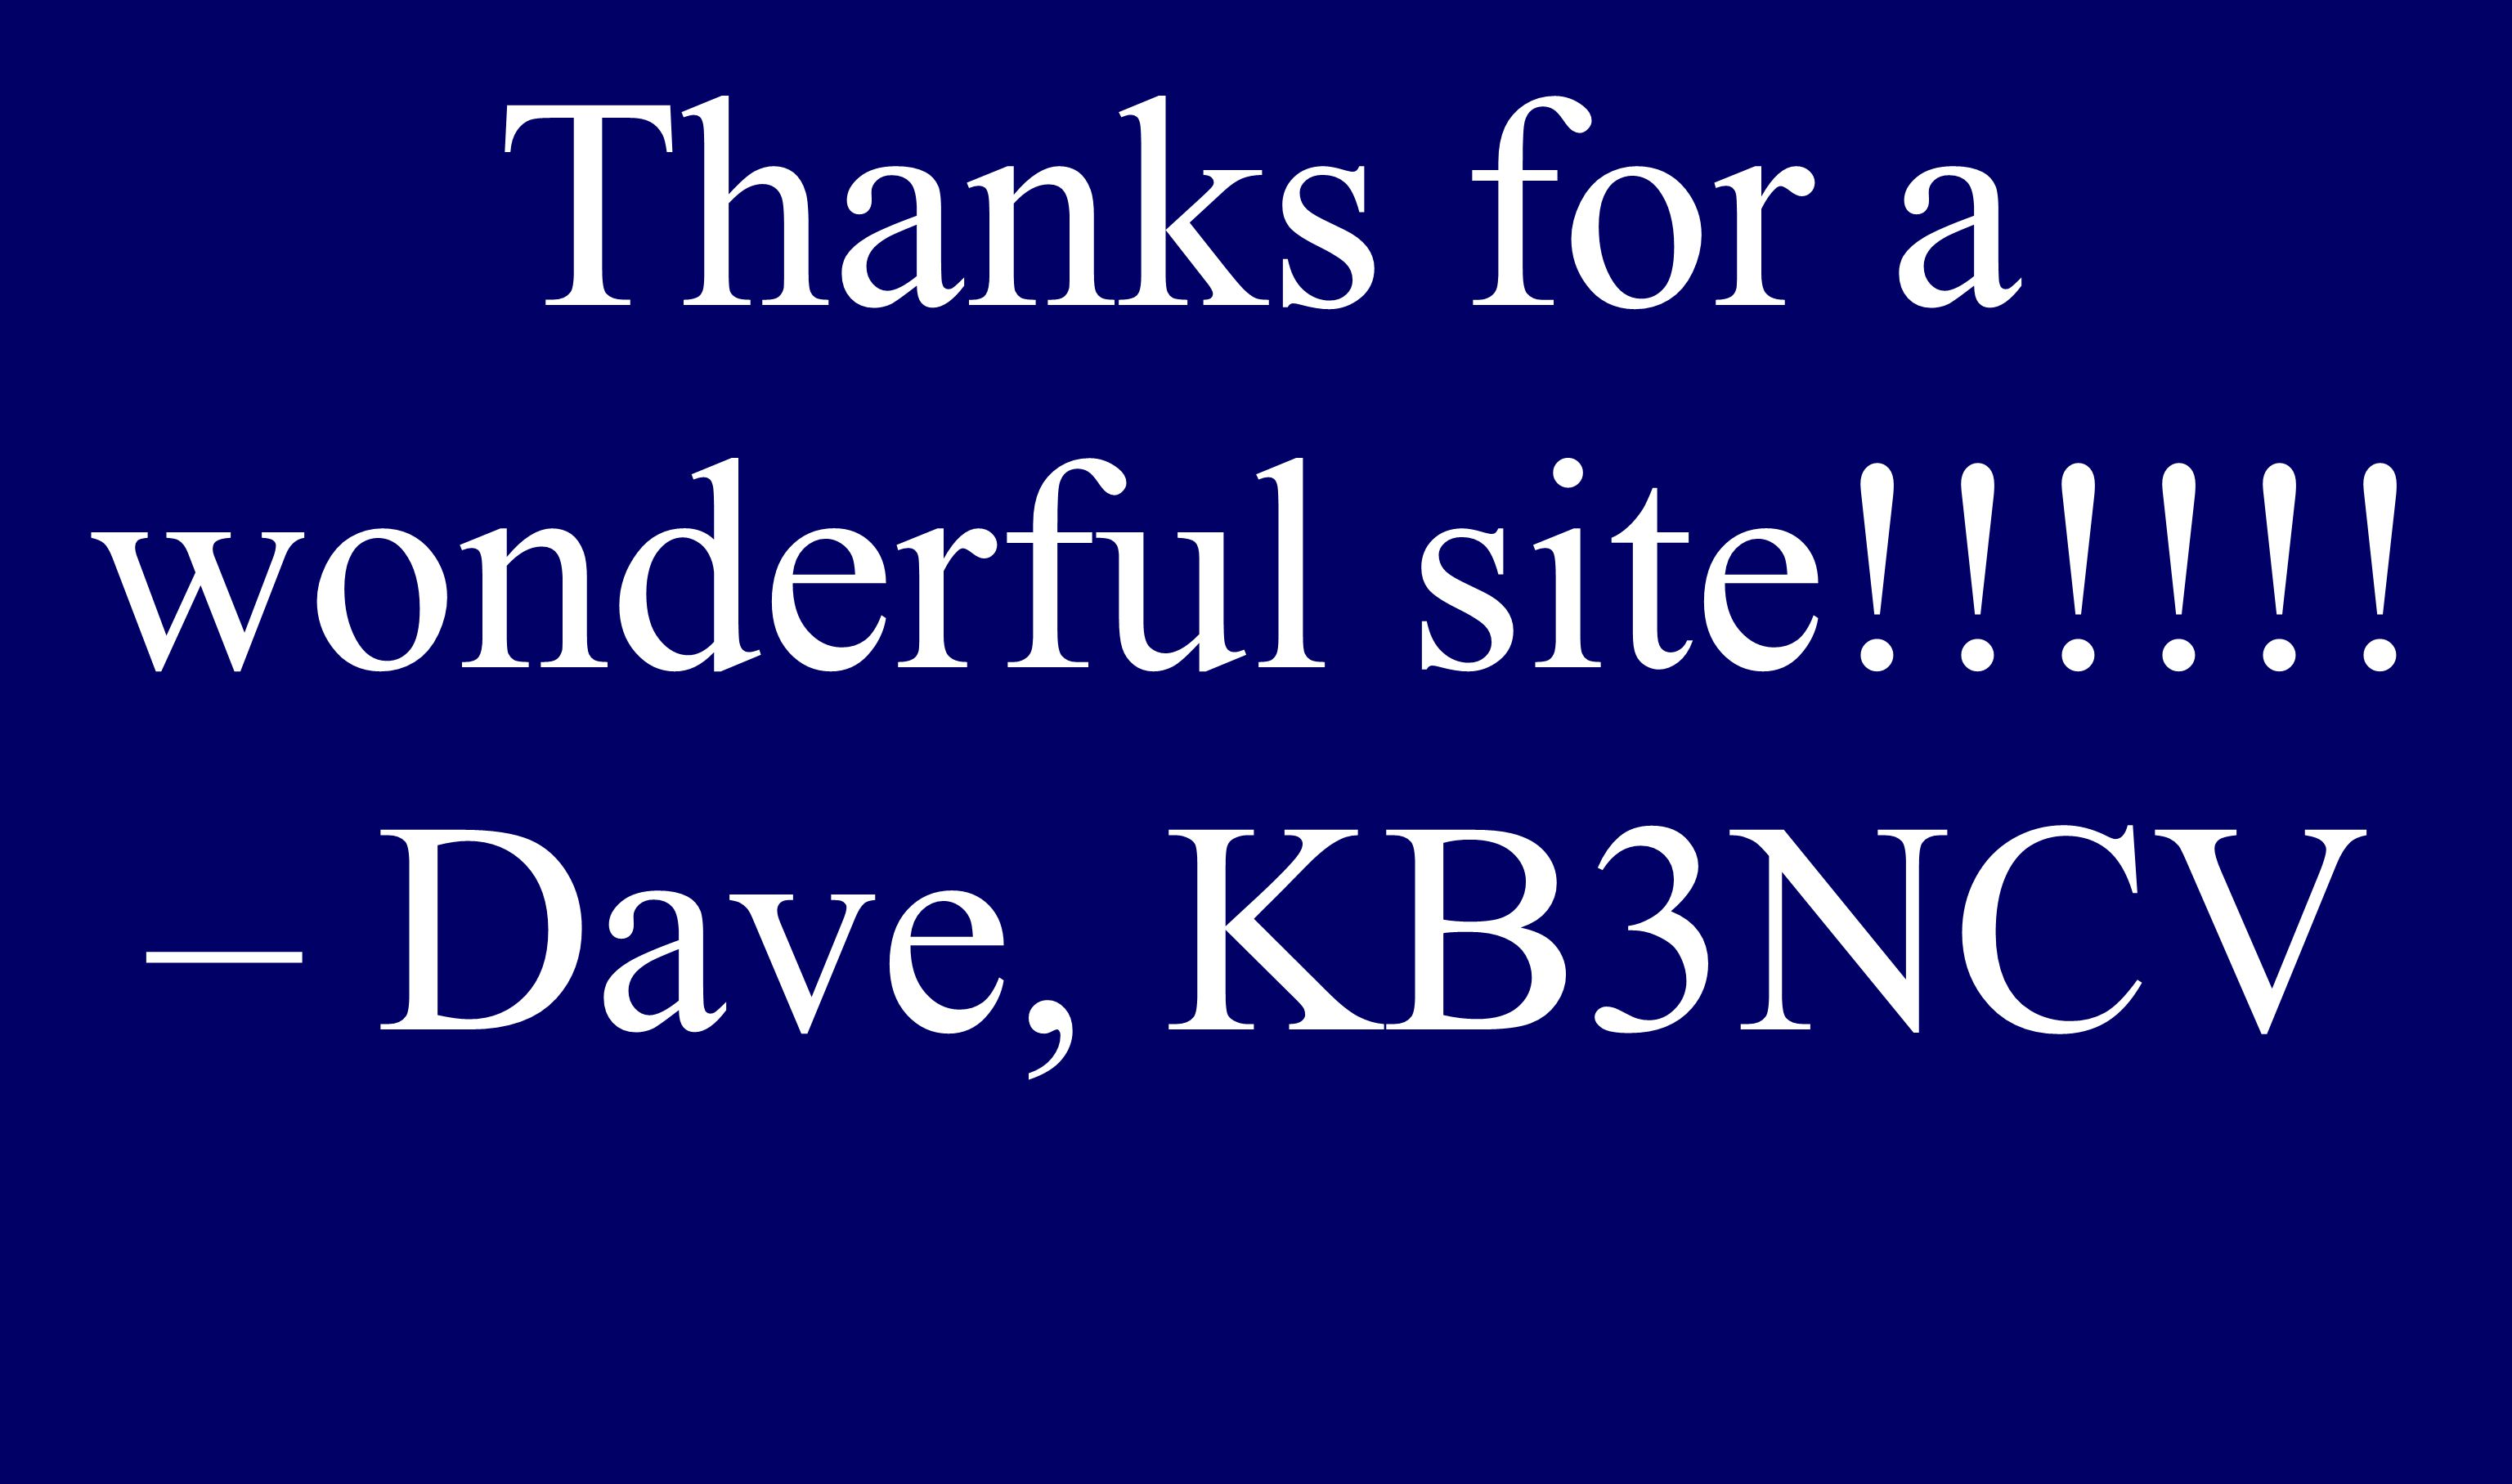 Thanks for a wonderful site!!!!!! – Dave, KB3NCV